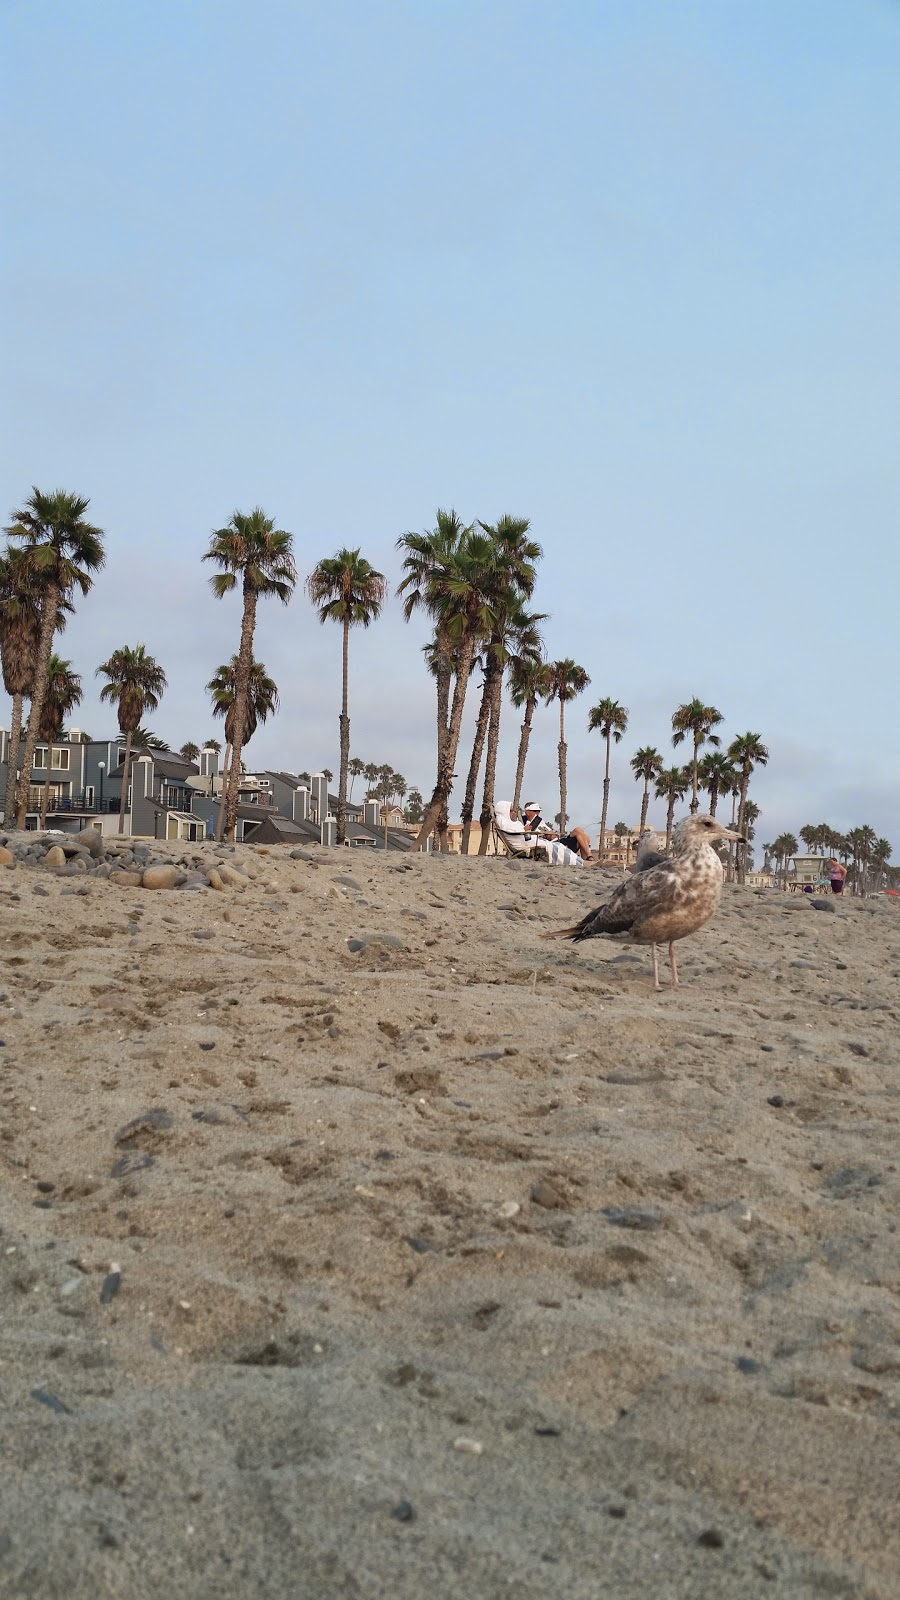 Oceanside Holiday - Beach Vacation Rental | real estate agency | 999 N Pacific St d311, Oceanside, CA 92054, USA | 7608450105 OR +1 760-845-0105